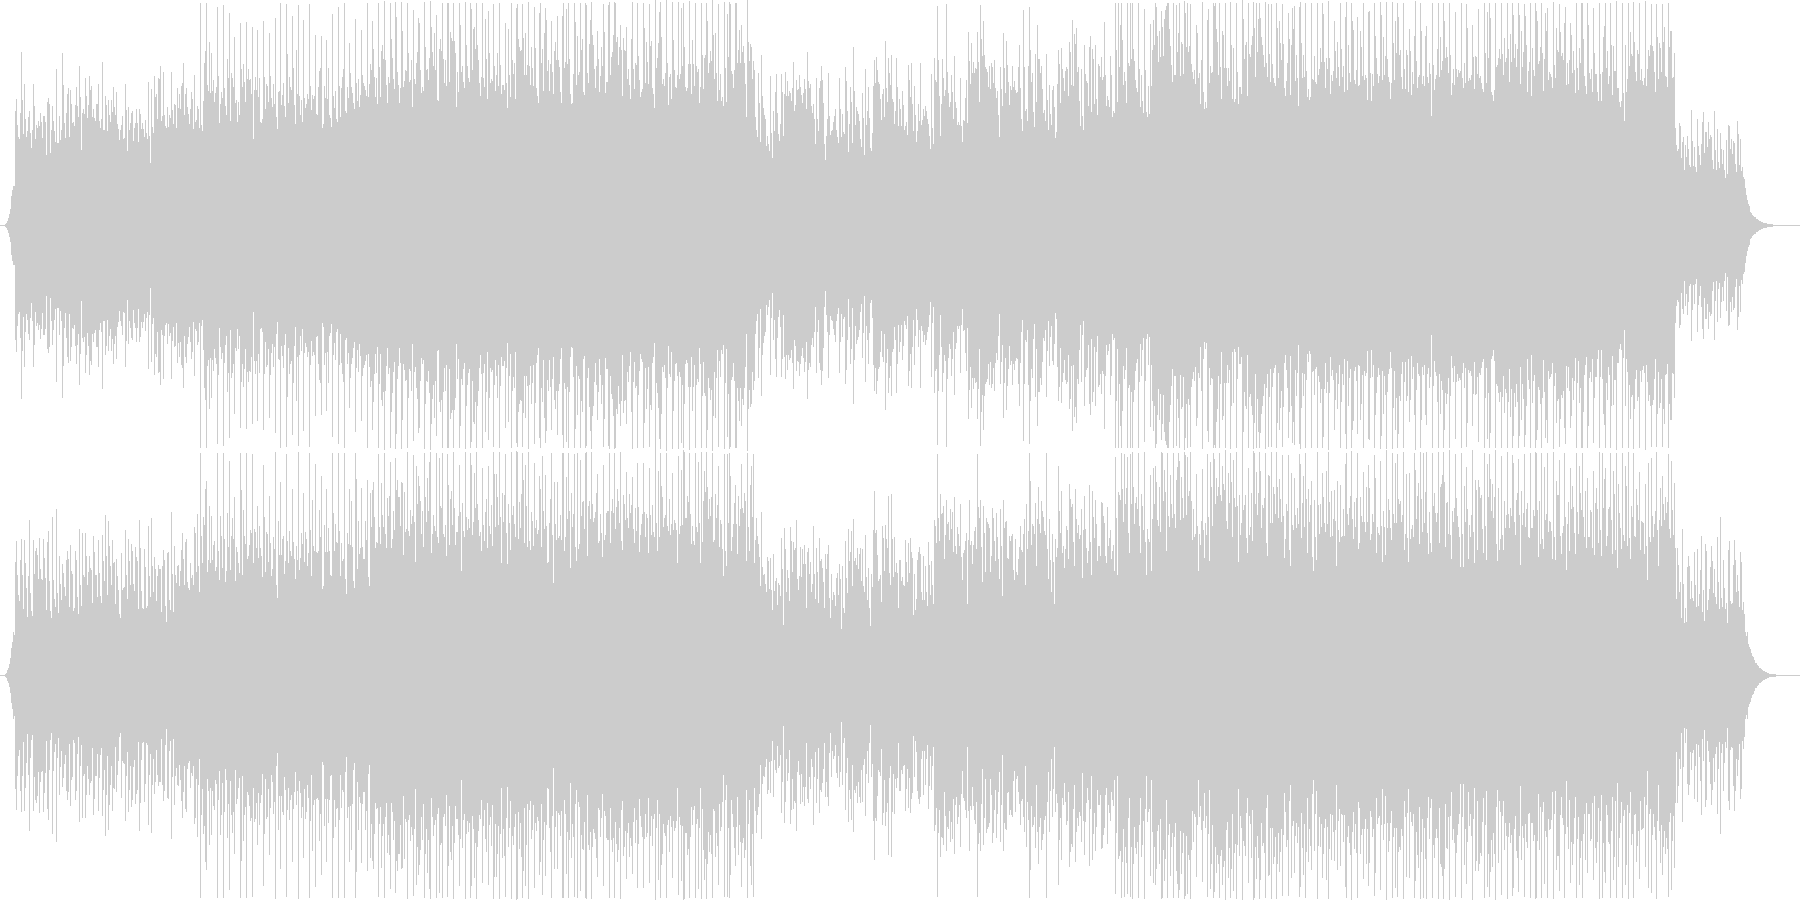 Live Performance Guitar Opening Impressive Grand Company VP's unreproduced waveform